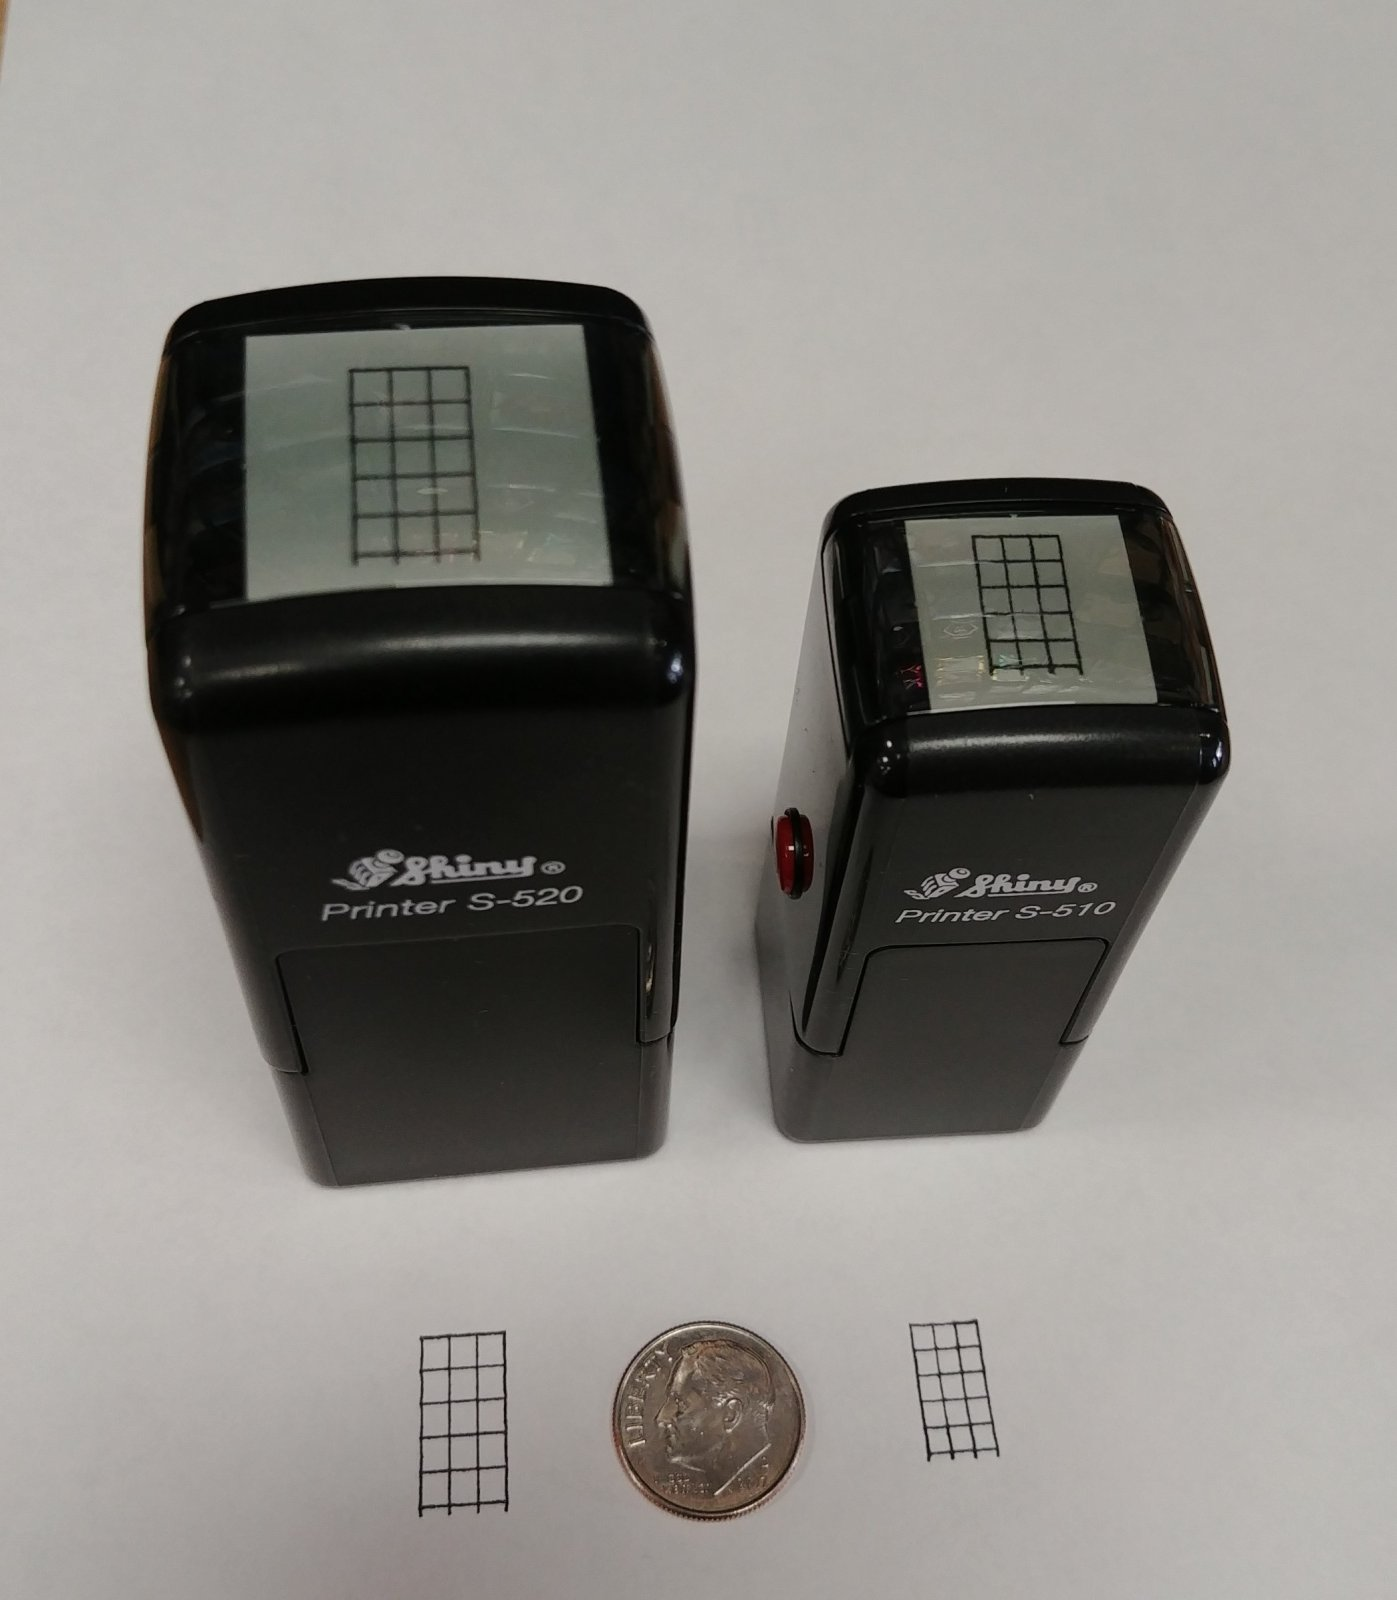 Aeromark Large 4-String Self-Inking Fret Stamp